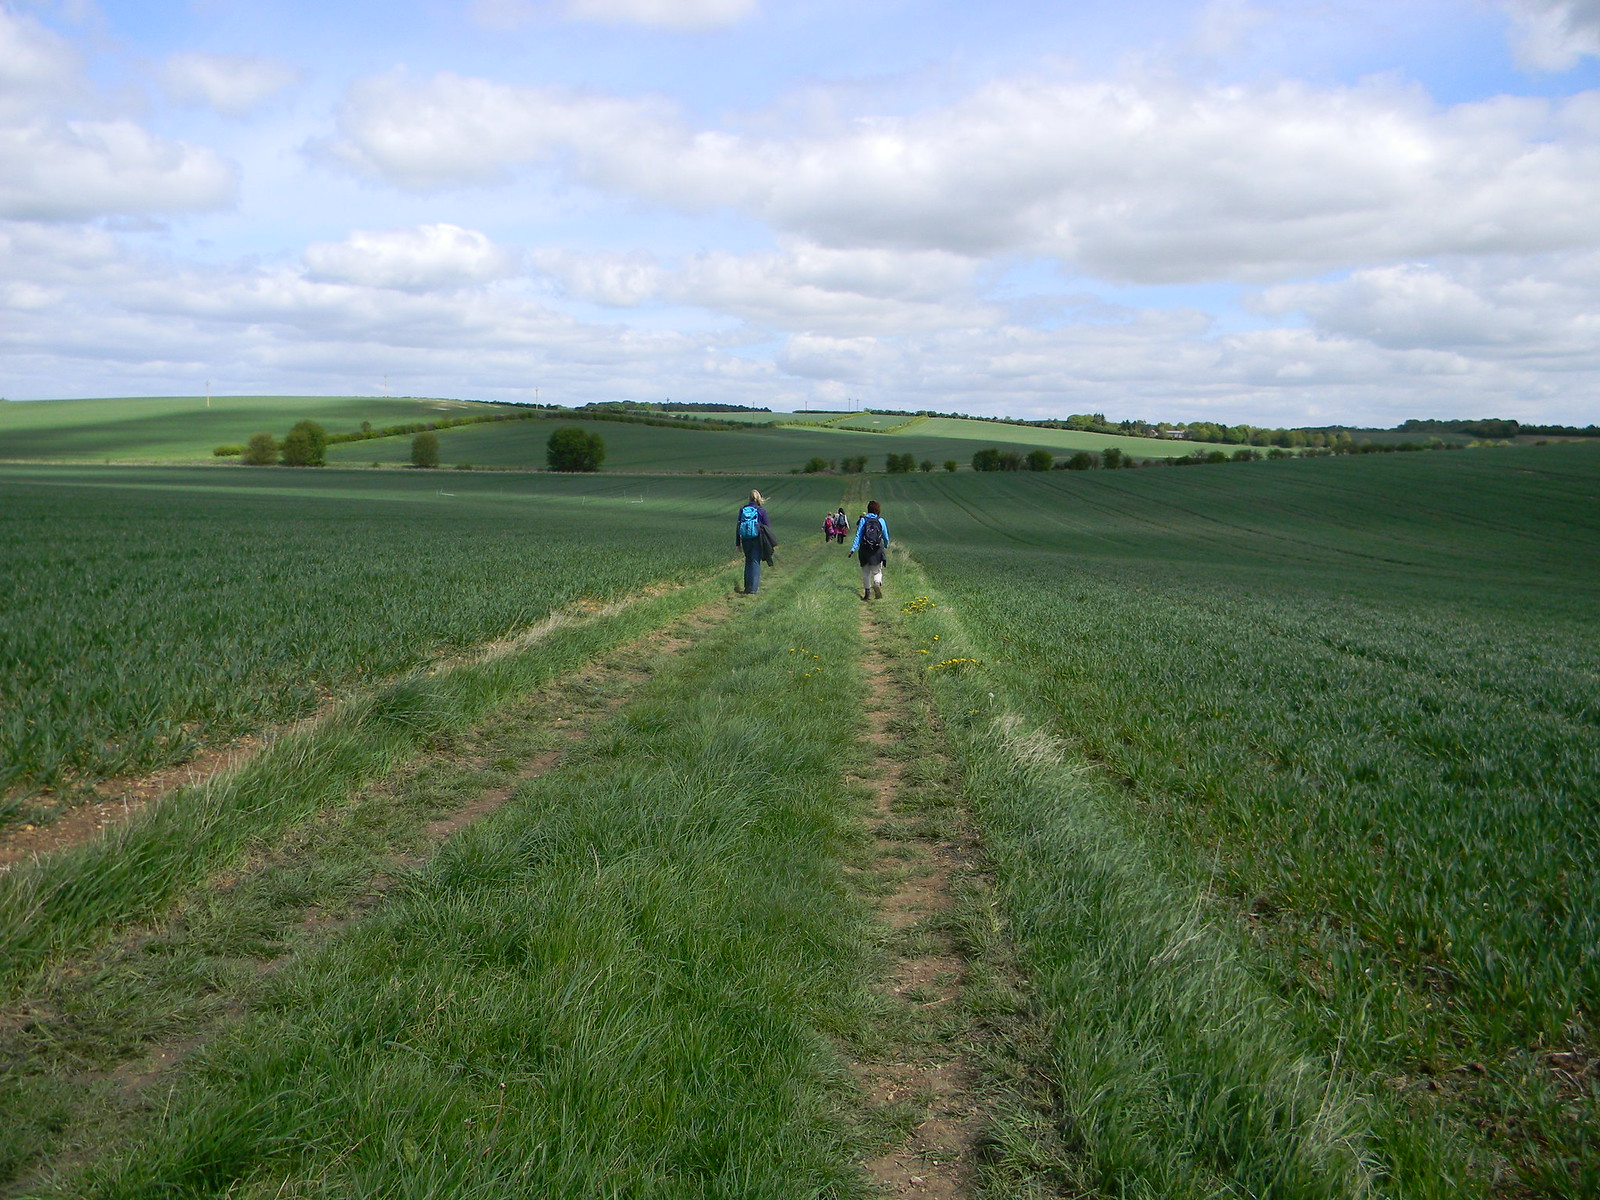 Across a big field Baldock Circular